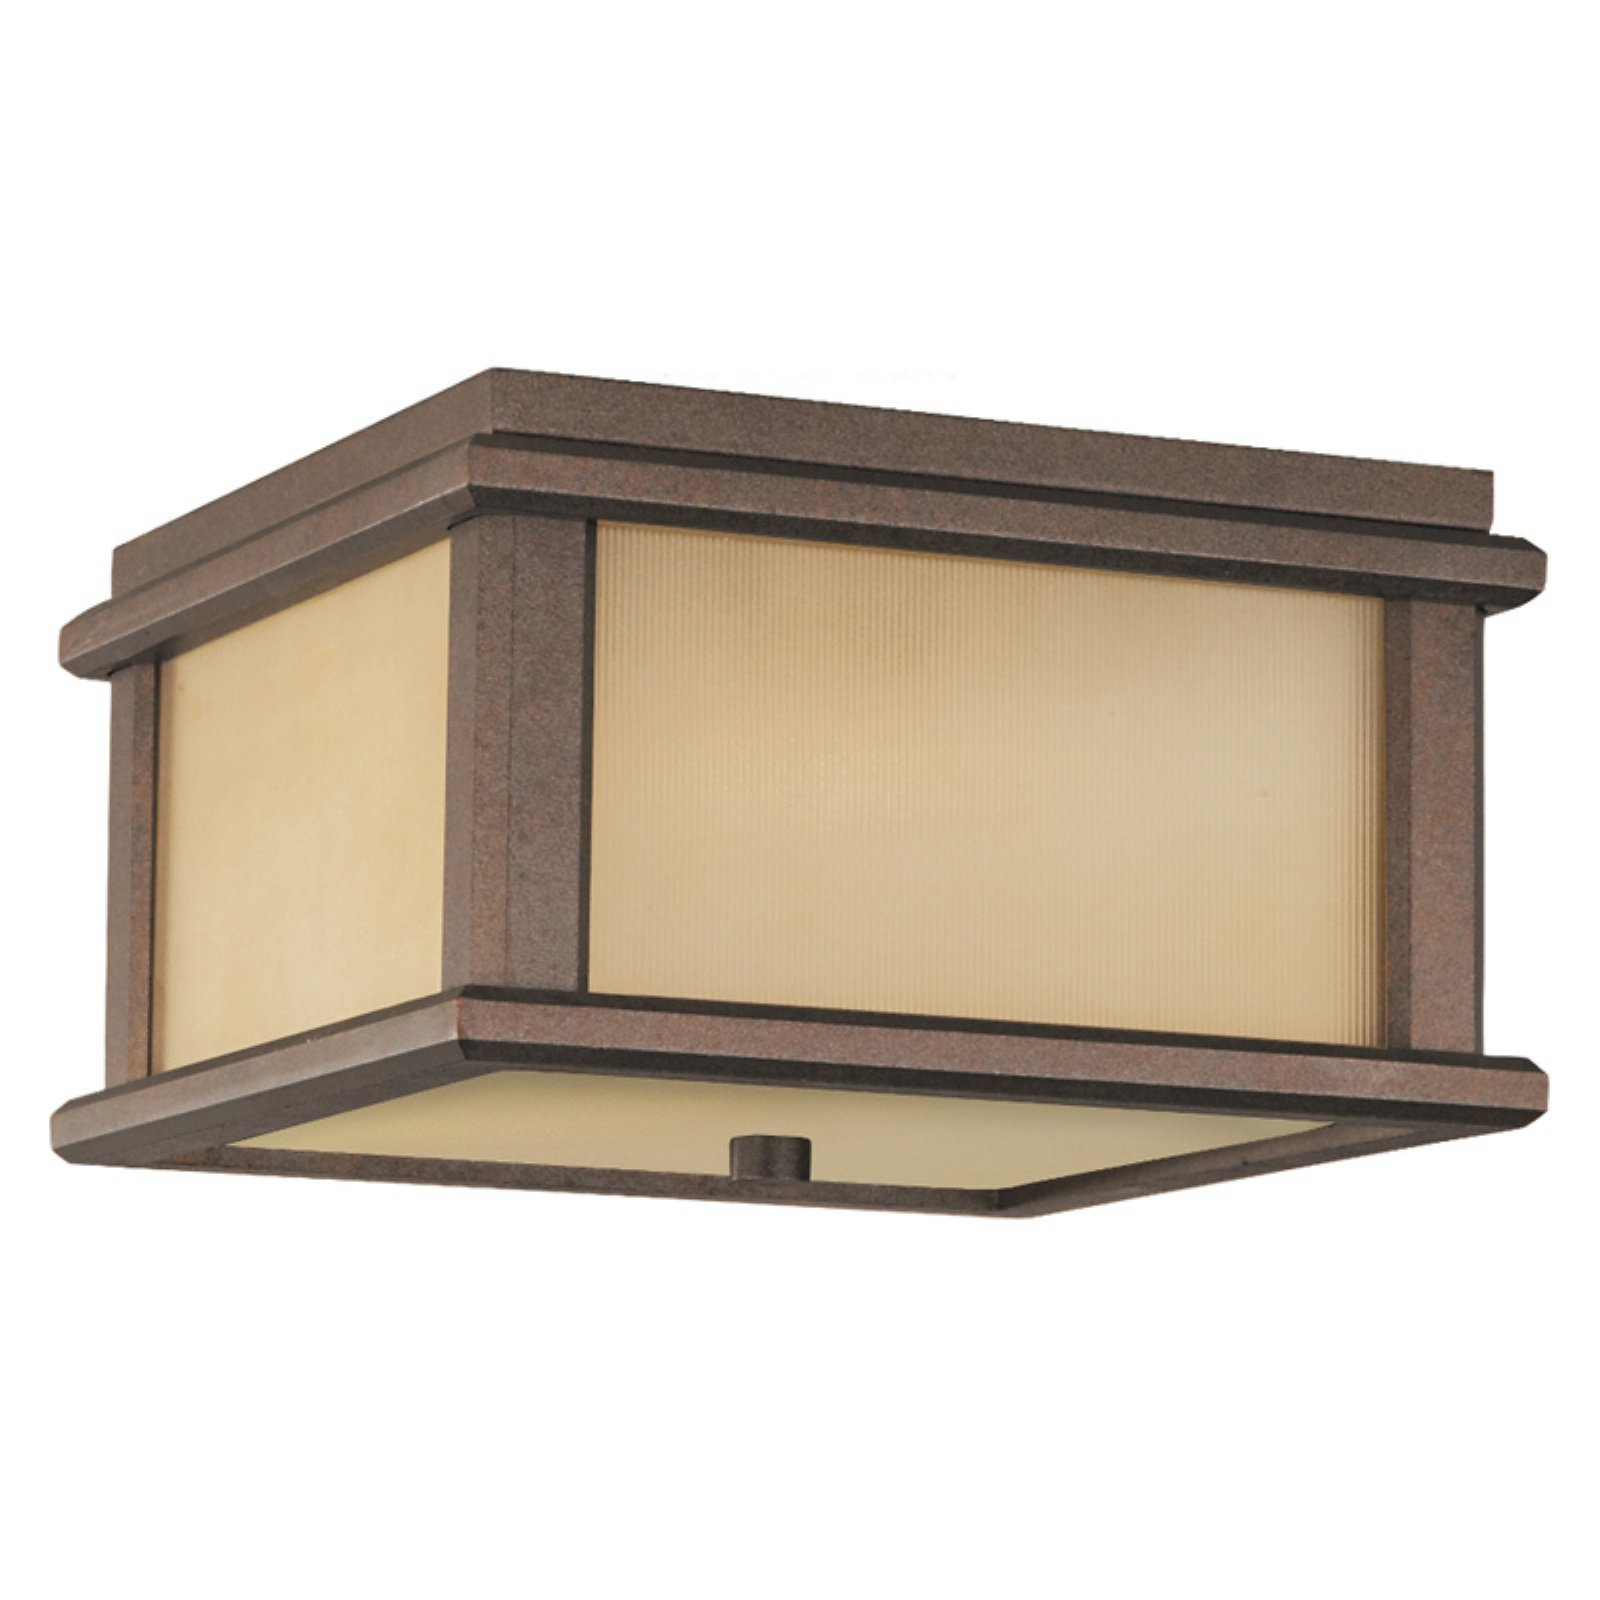 Feiss OL3413 Mission Lodge Outdoor Ceiling Light